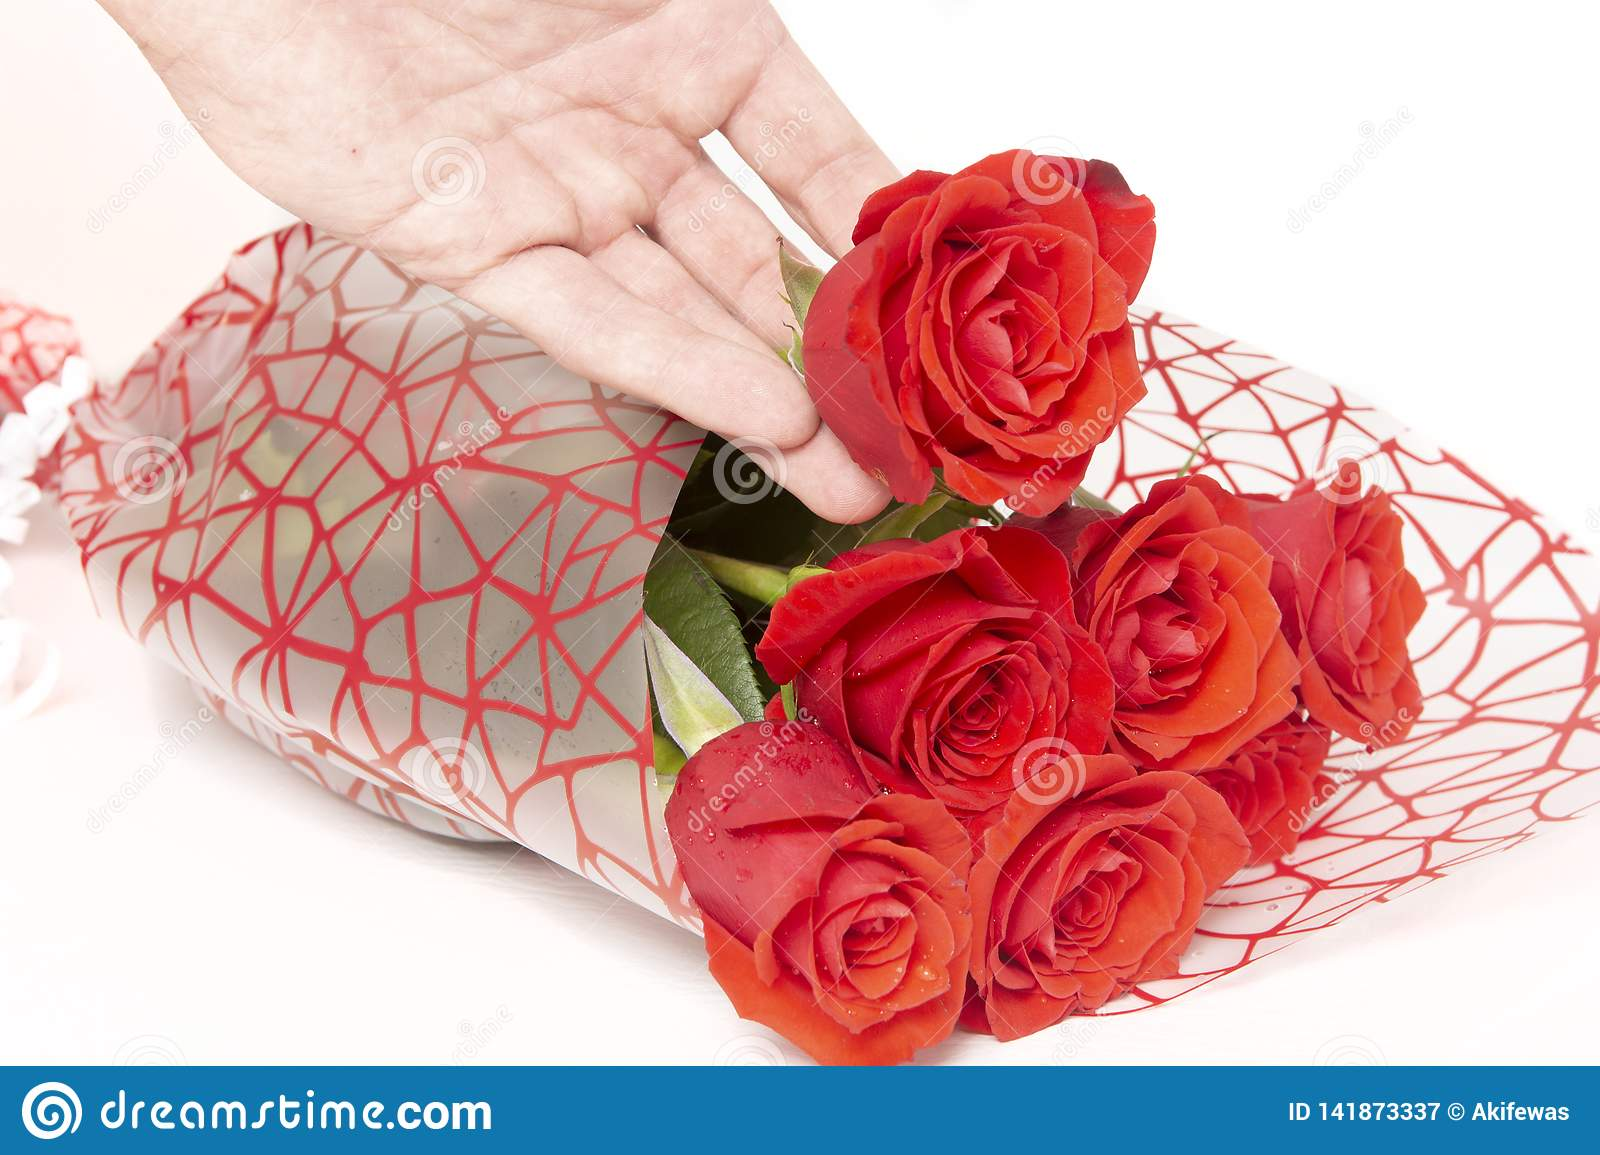 Hand holding a bouquet of roses on a white background